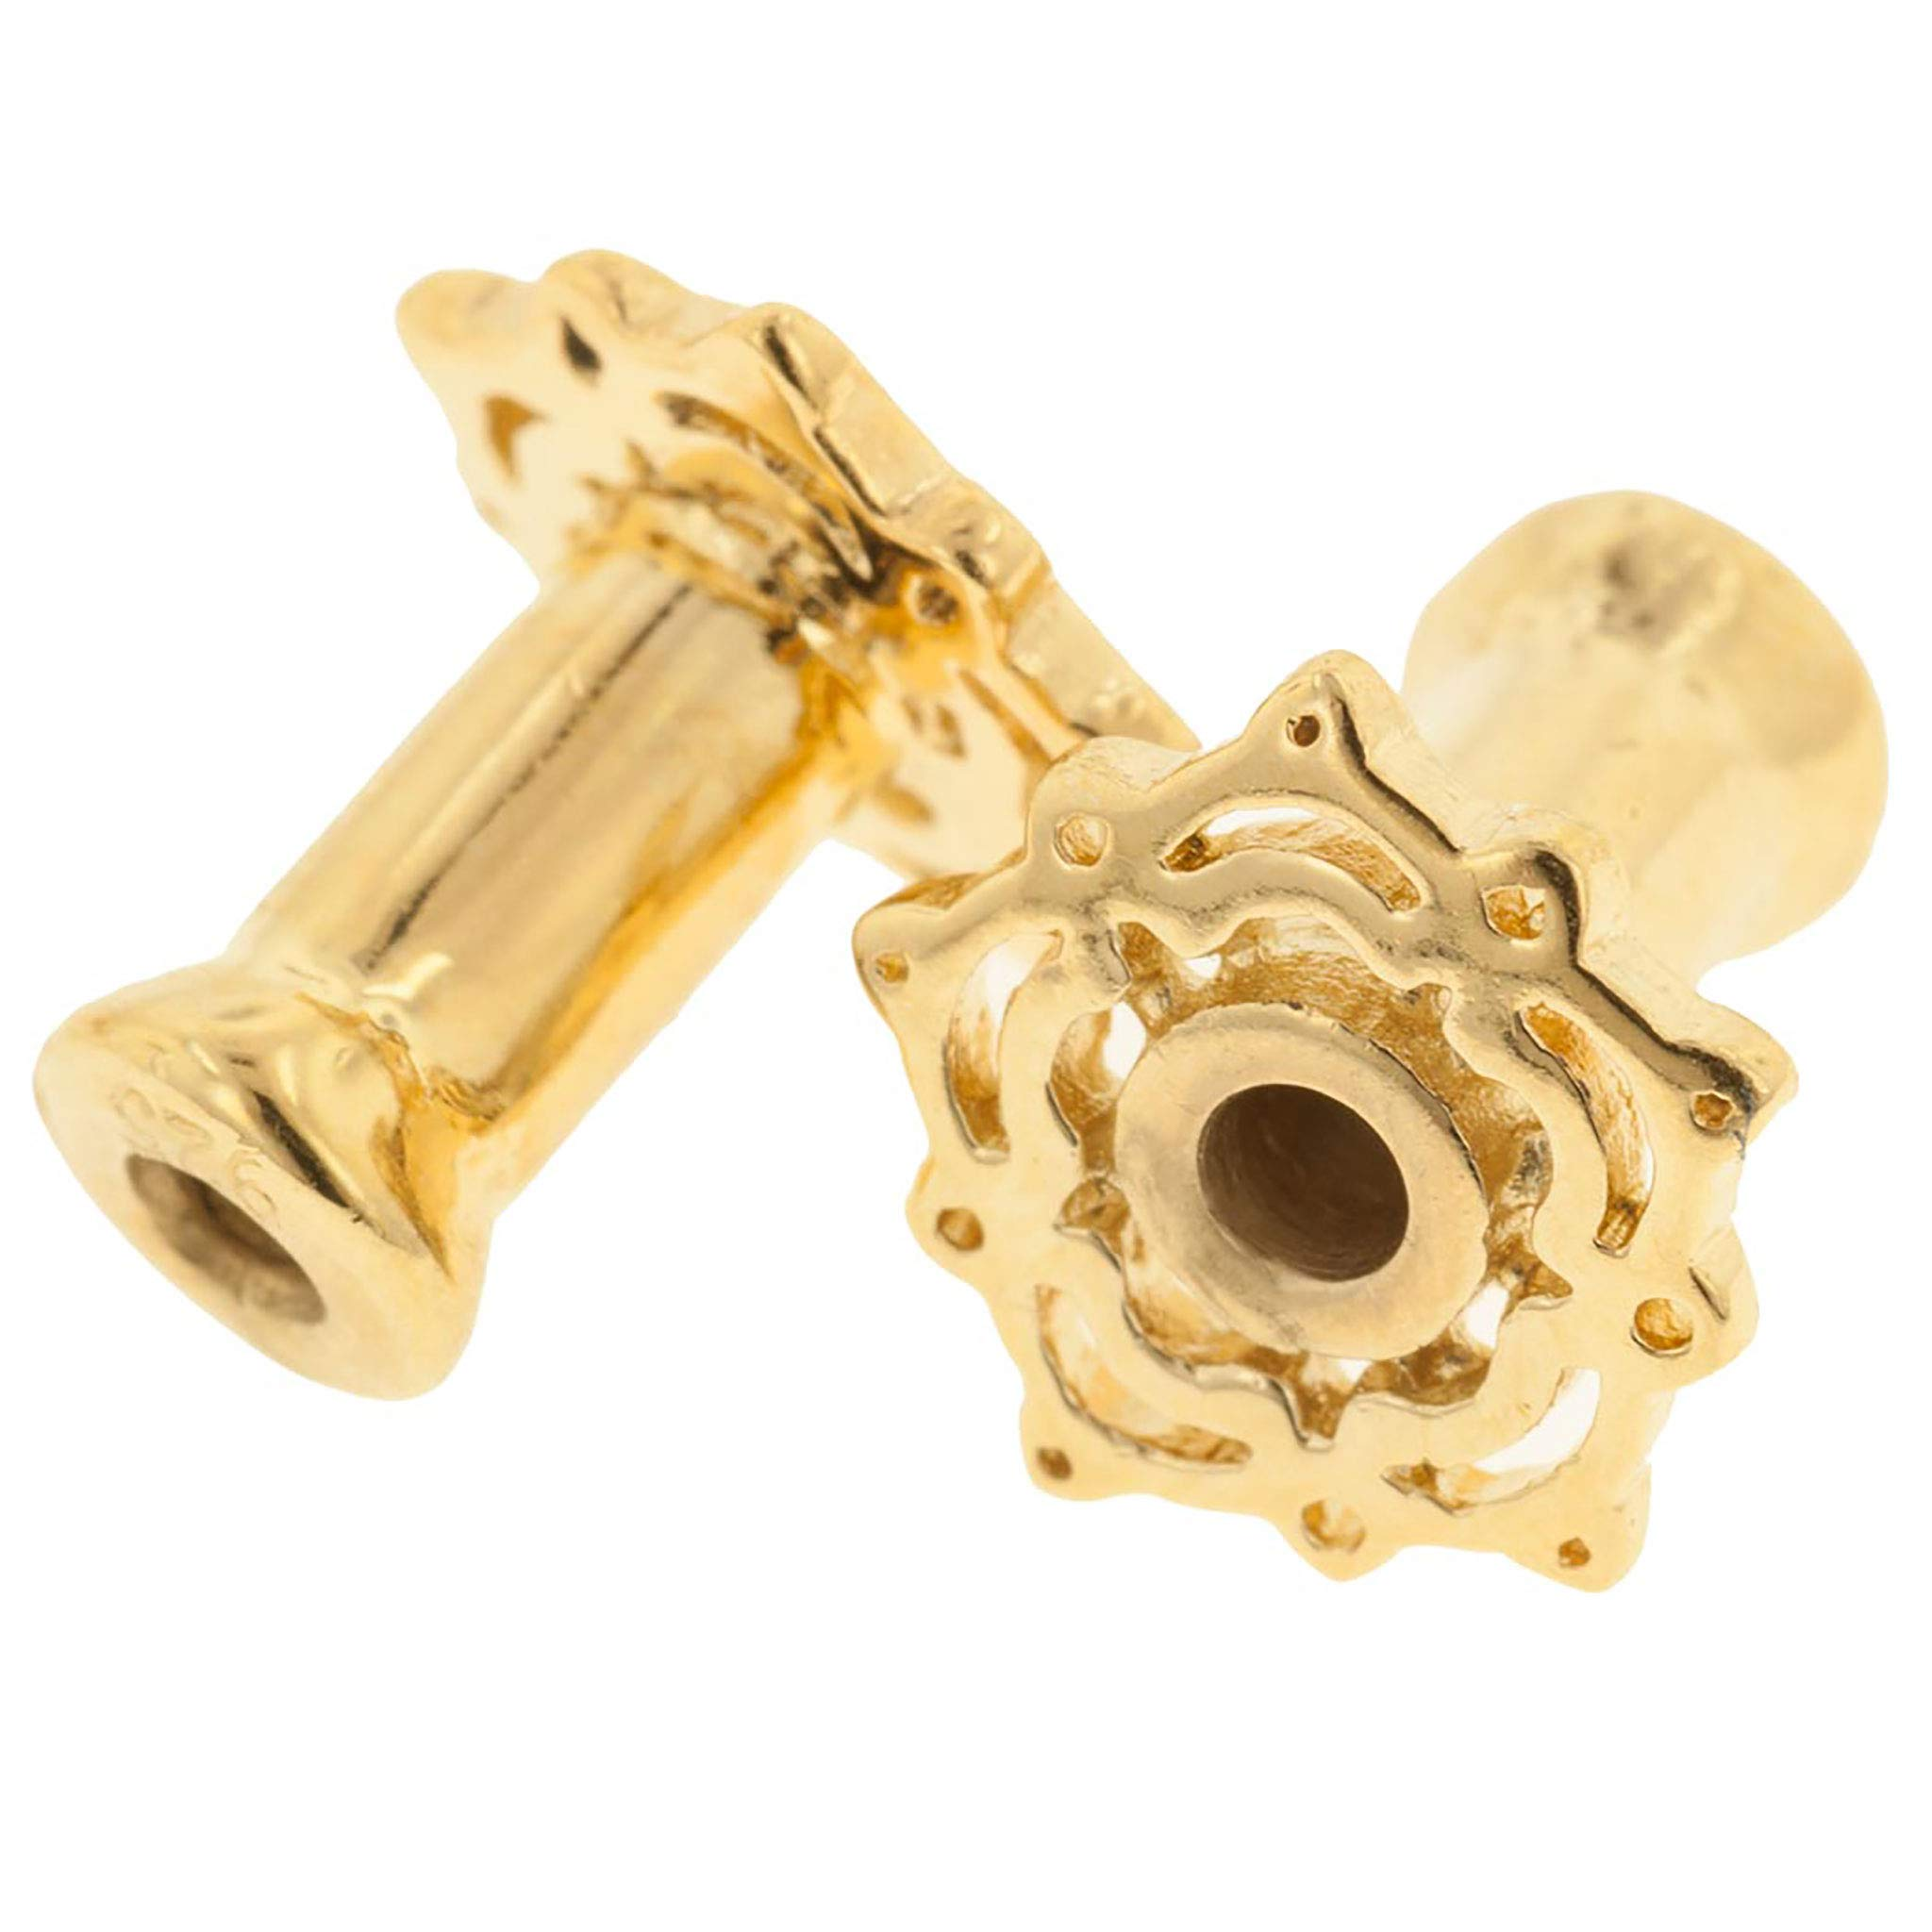 Steel Navel Body Jewelry Pair of Gold Plated Double Flared Lace Lotus Eyelets: 4g by Steel Navel Body Jewelry